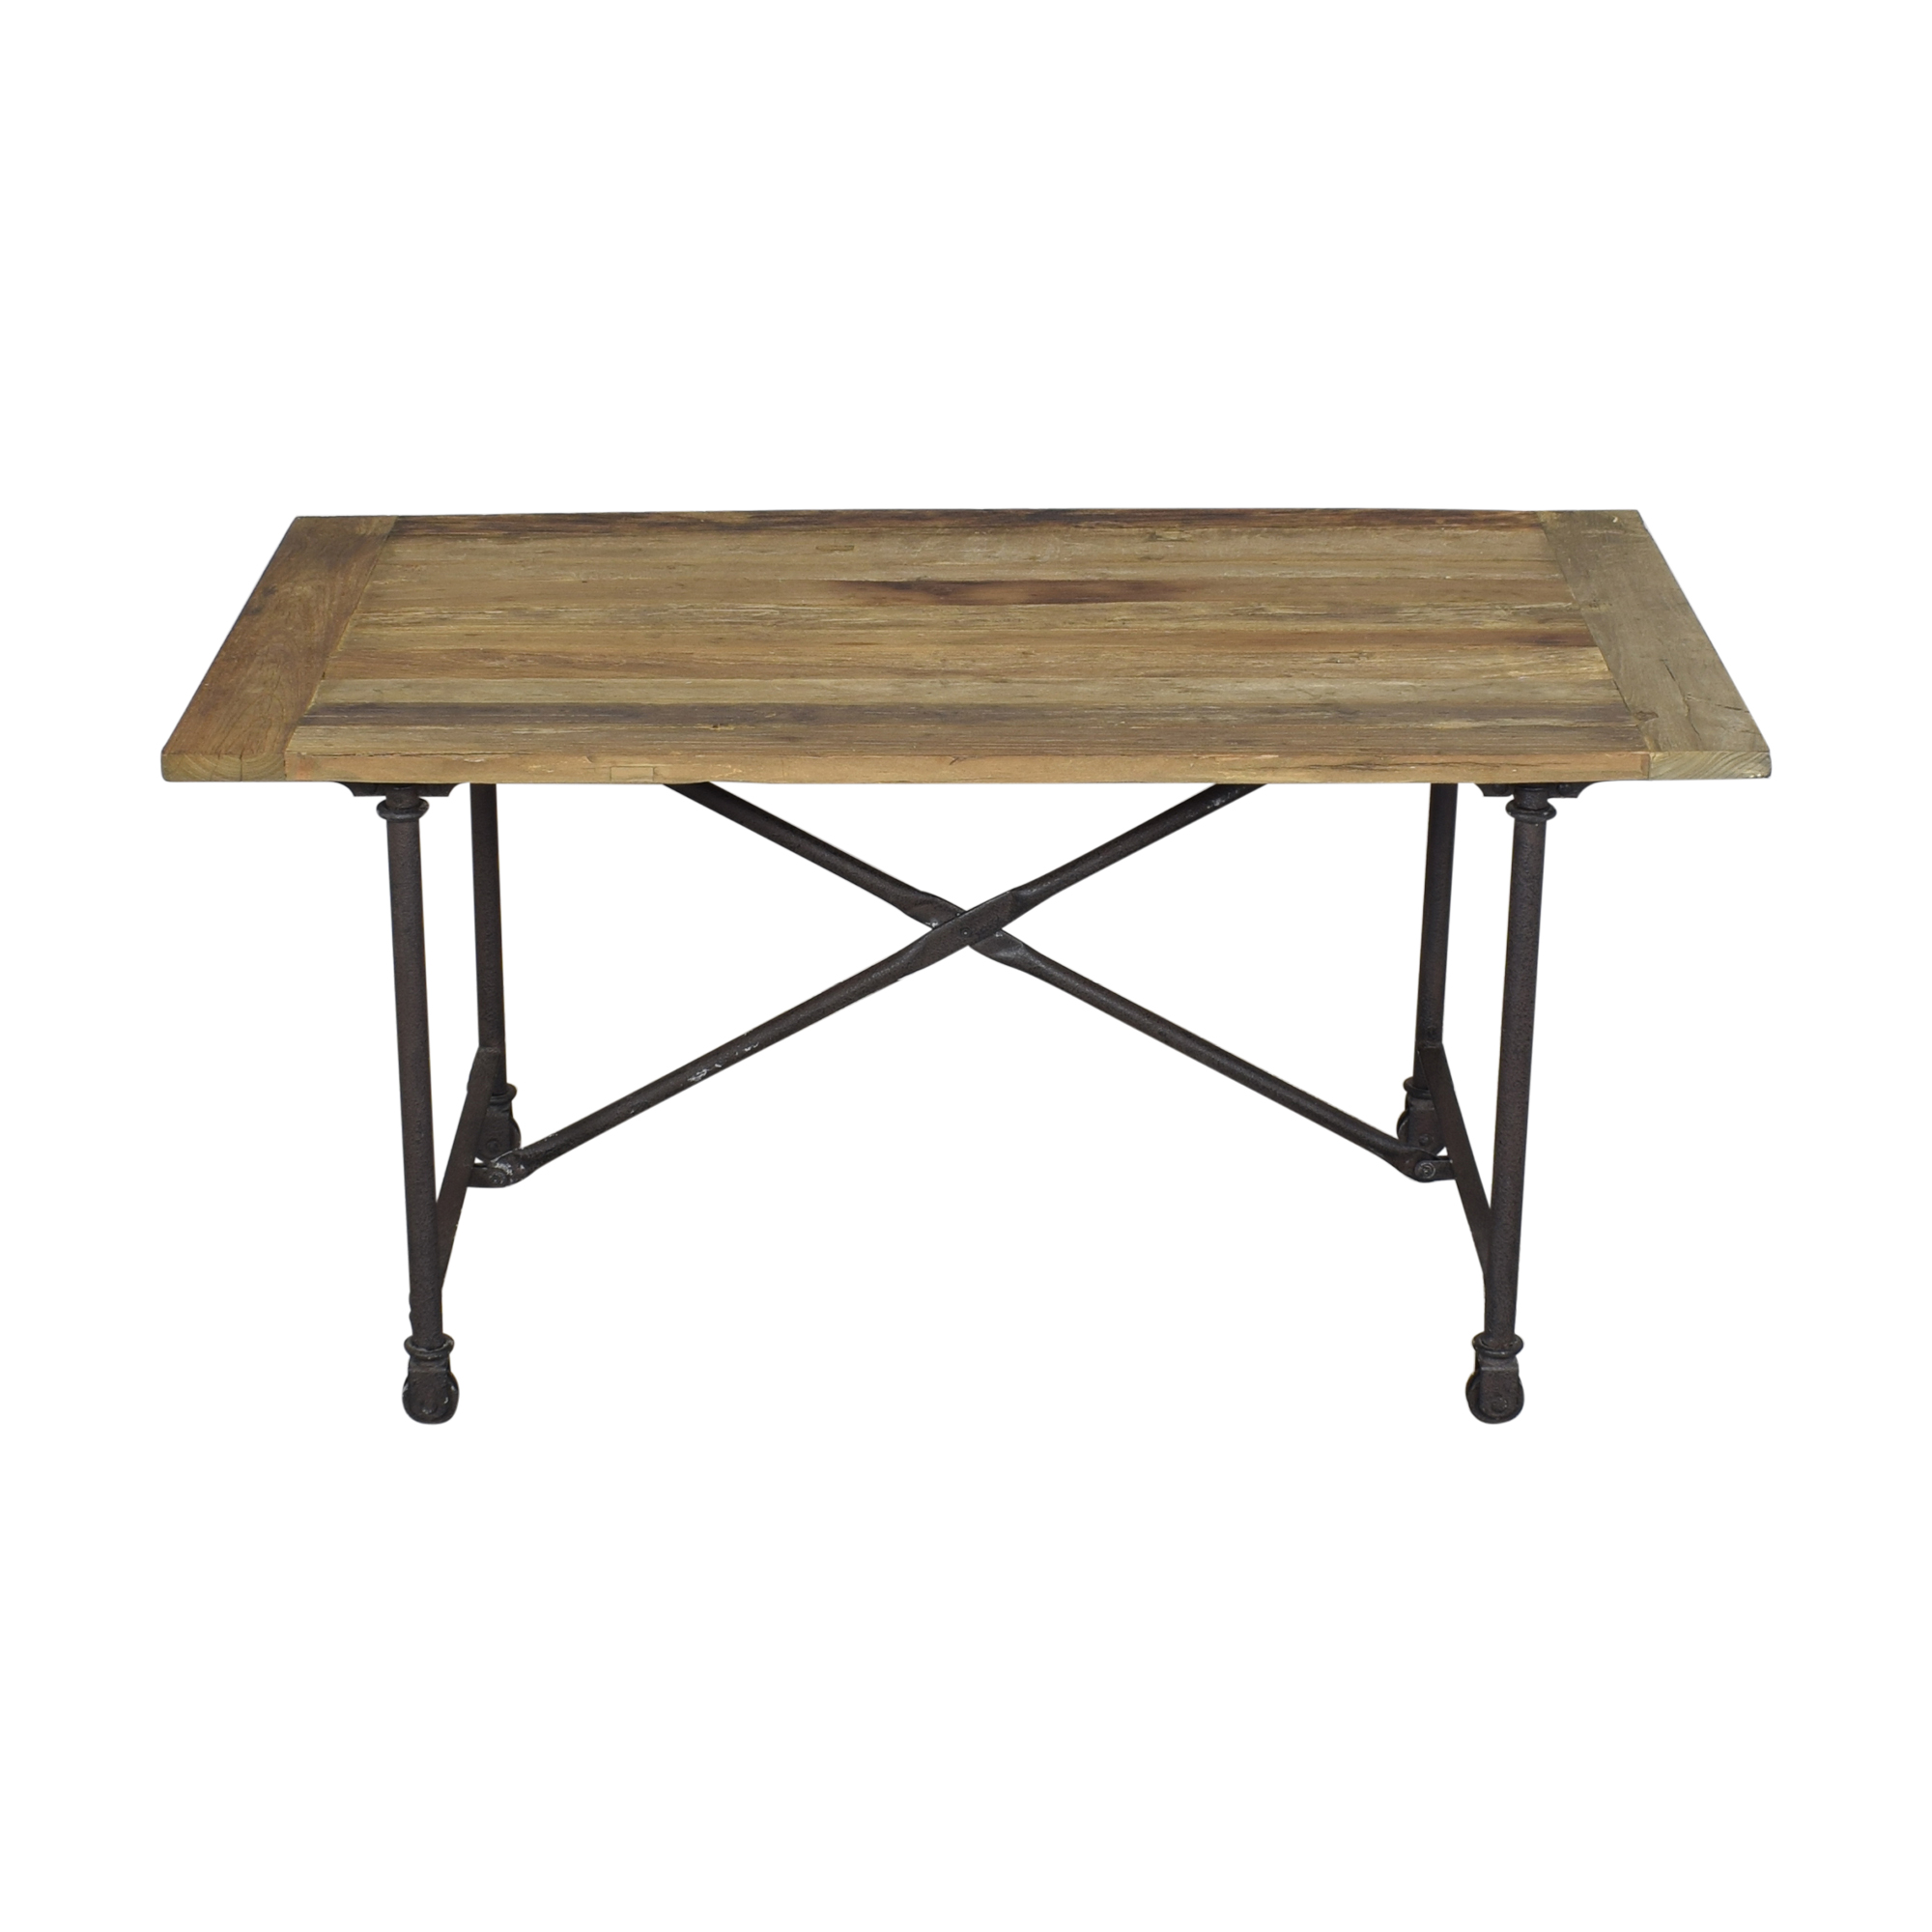 Restoration Hardware Restoration Hardware Flatiron Rectangular Dining Table